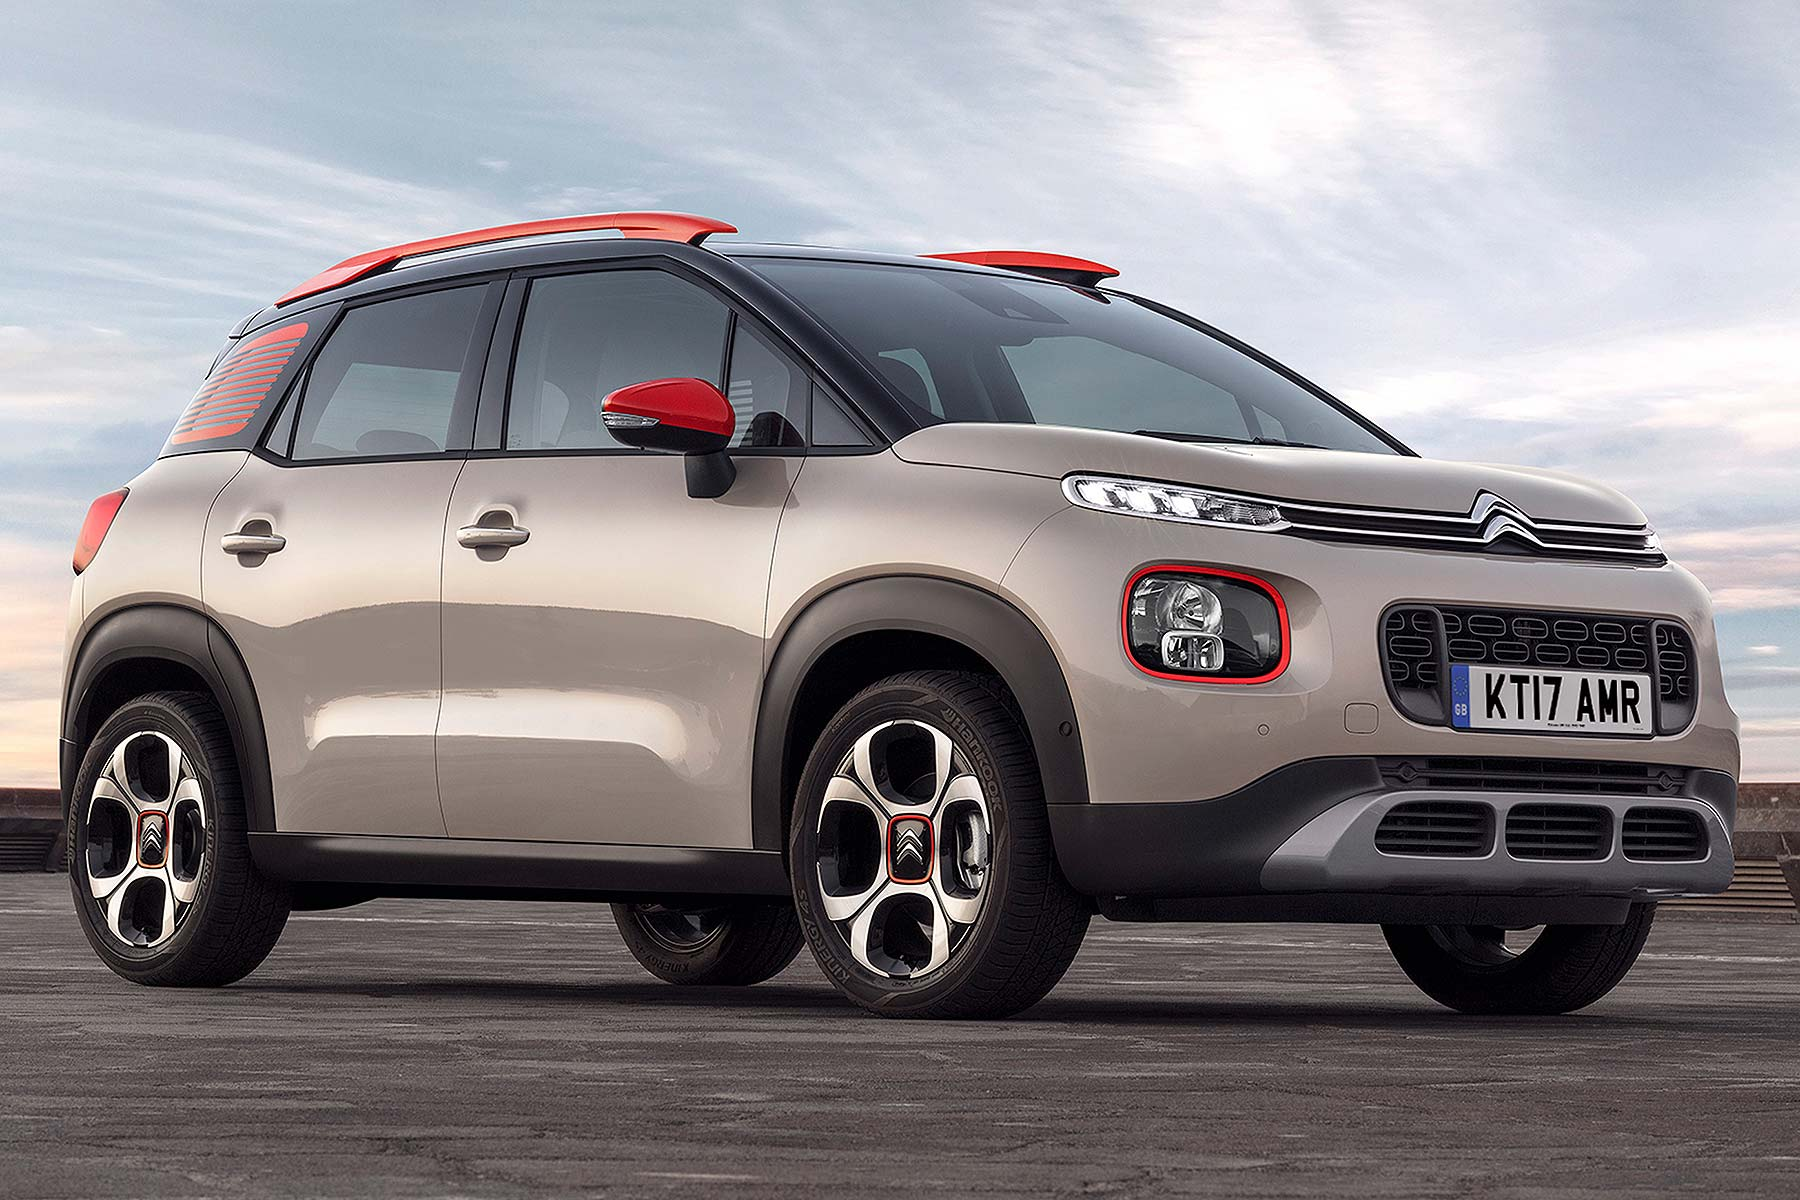 new citroen c3 aircross to undercut nissan juke motoring research. Black Bedroom Furniture Sets. Home Design Ideas